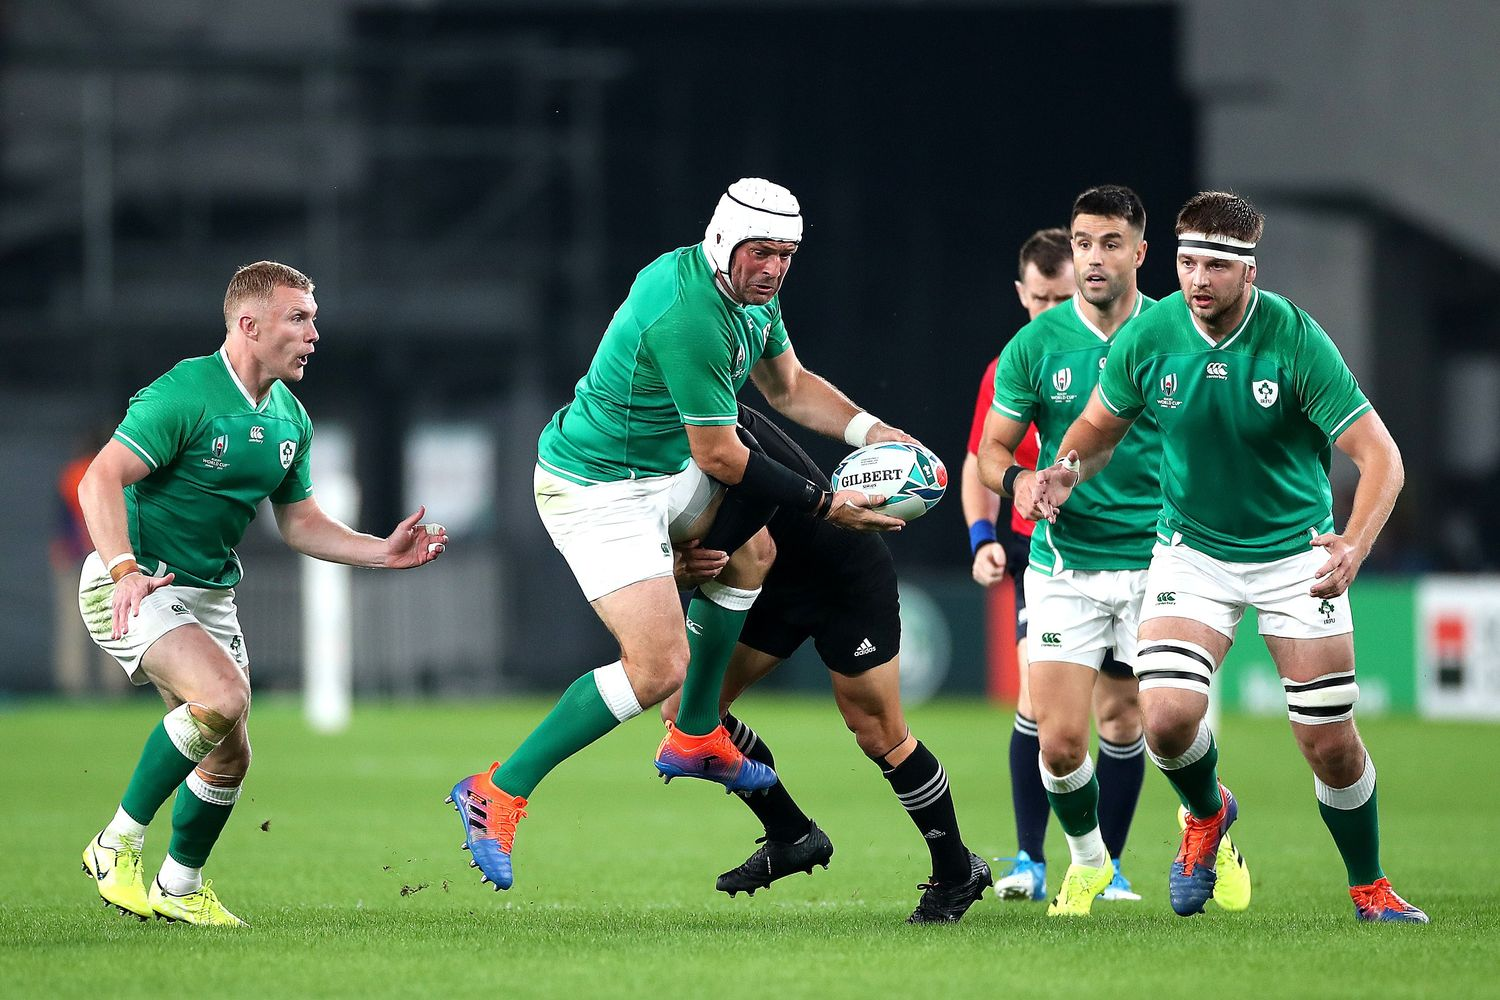 New Zealand v Ireland - Rugby World Cup 2019: Quarter-Final